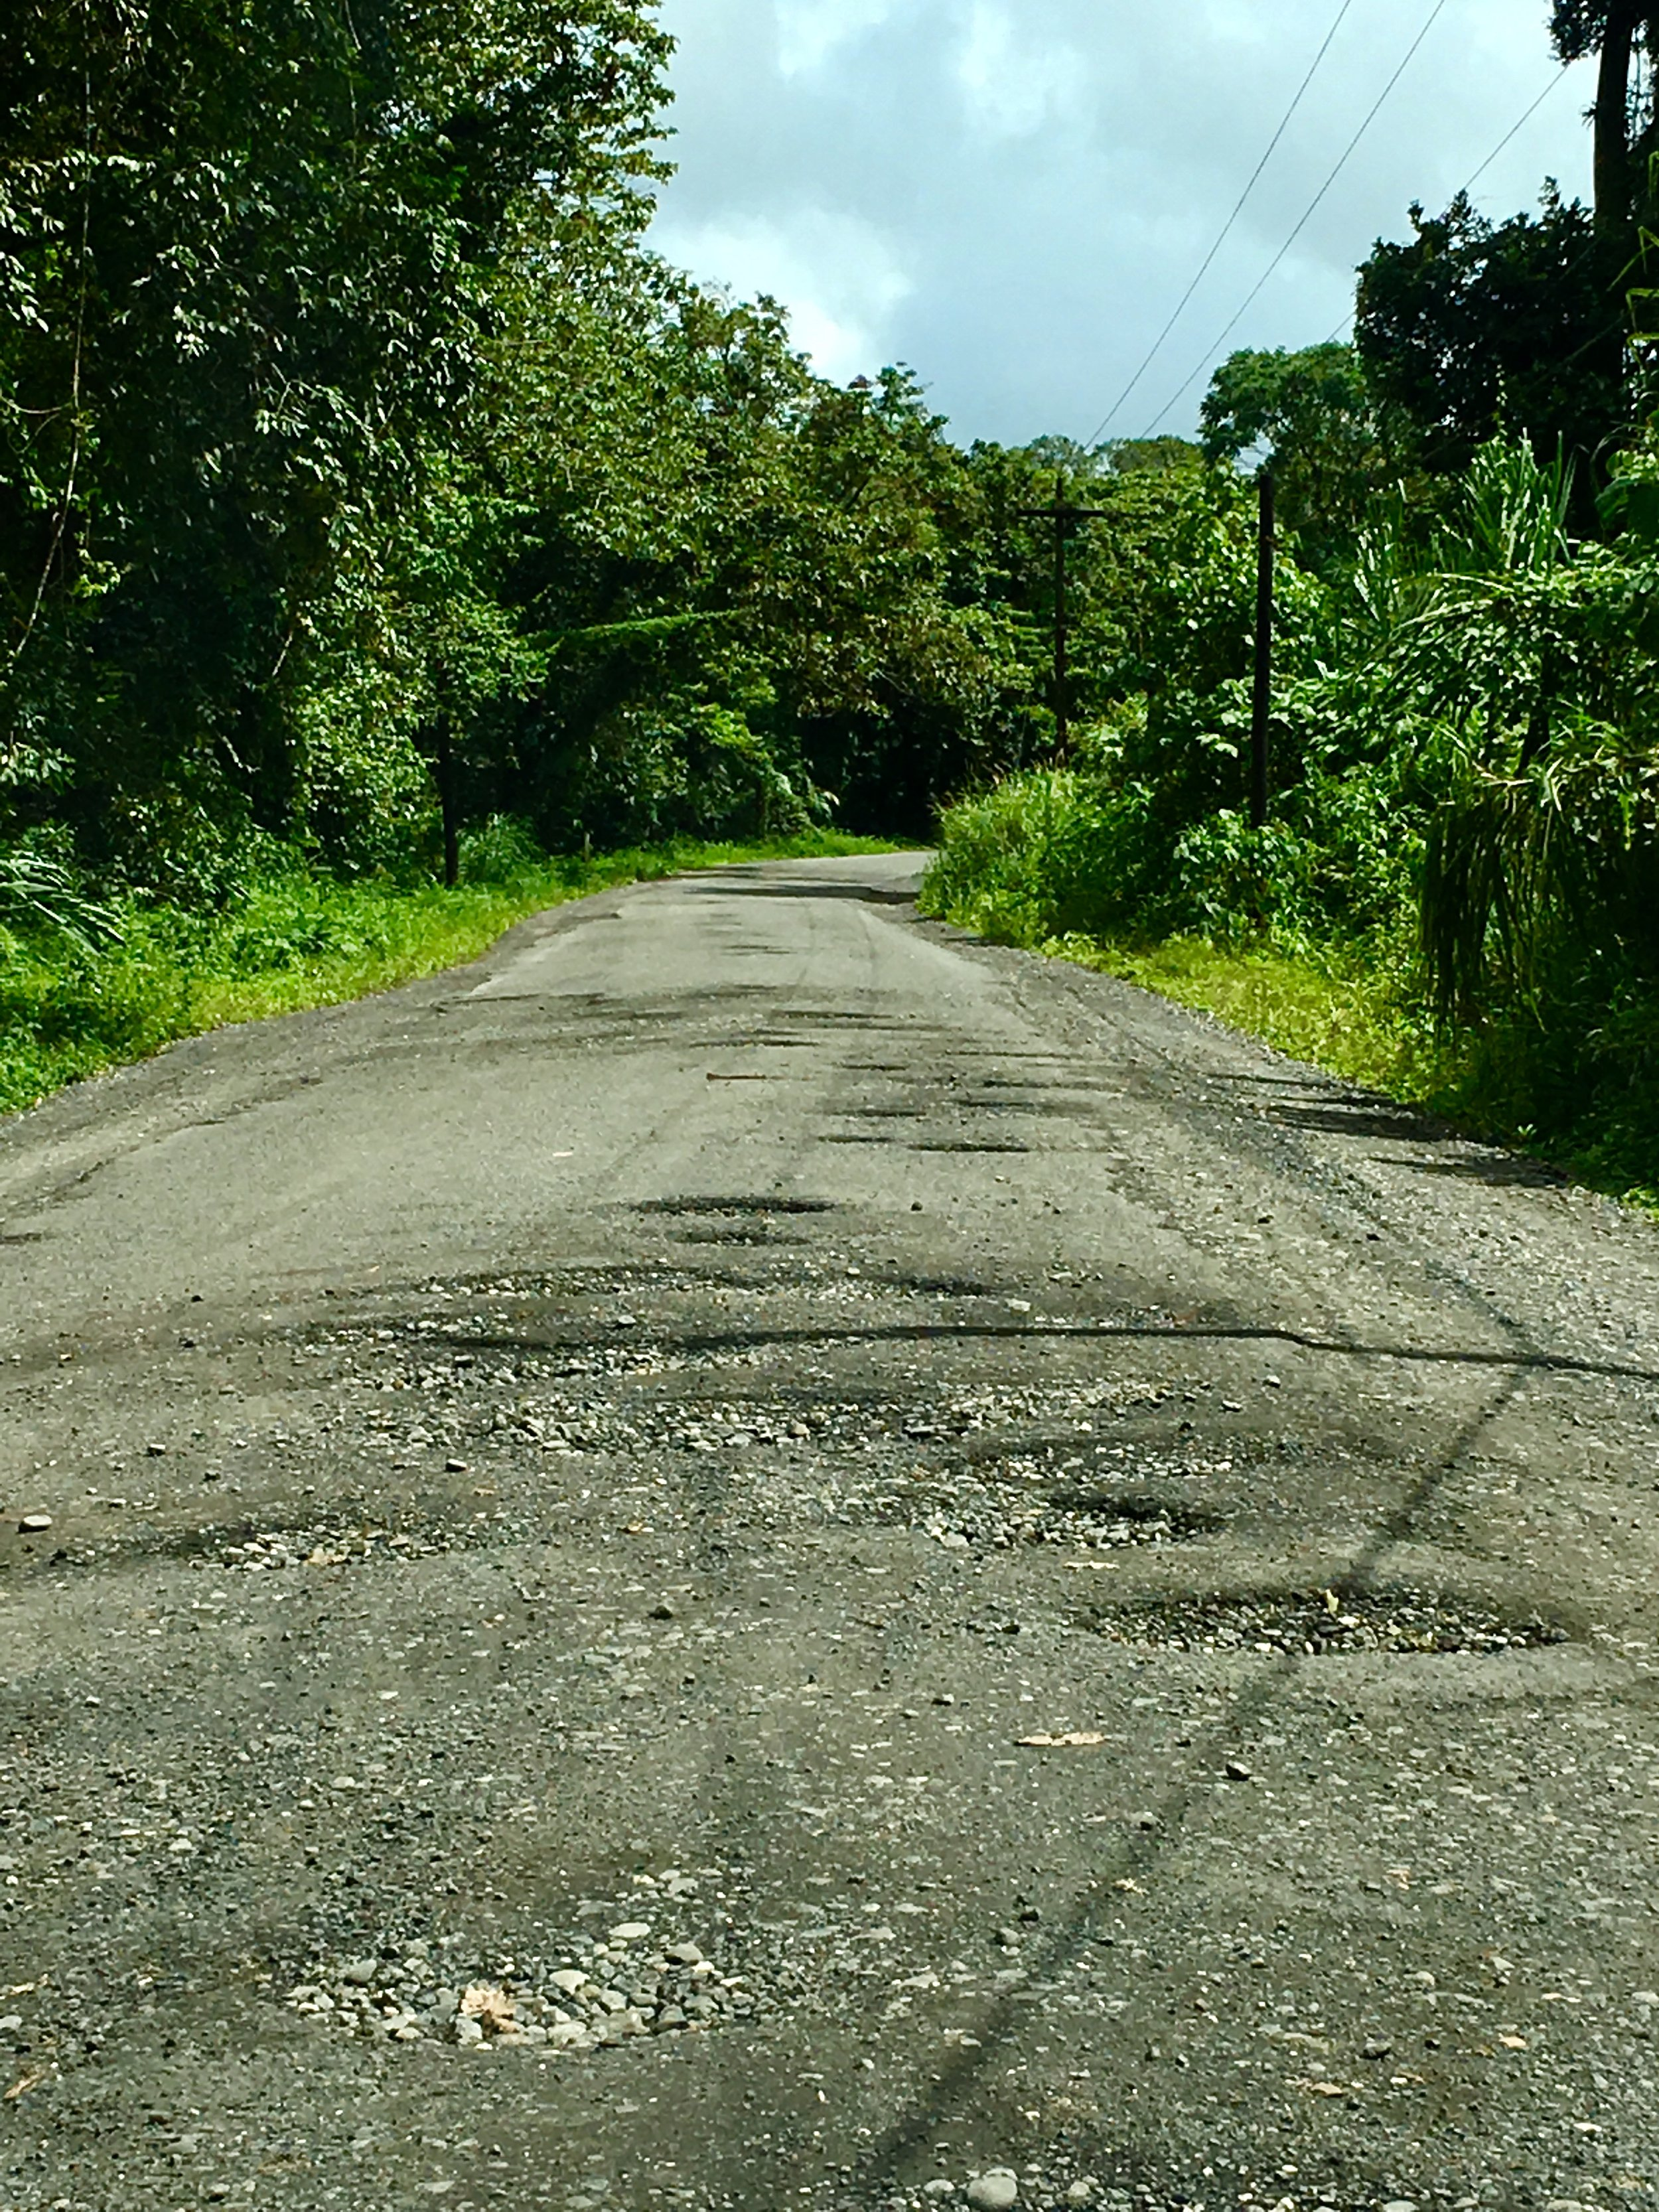 3-mile pothole-filled road around Arenal lake - we drove this 6 times!!